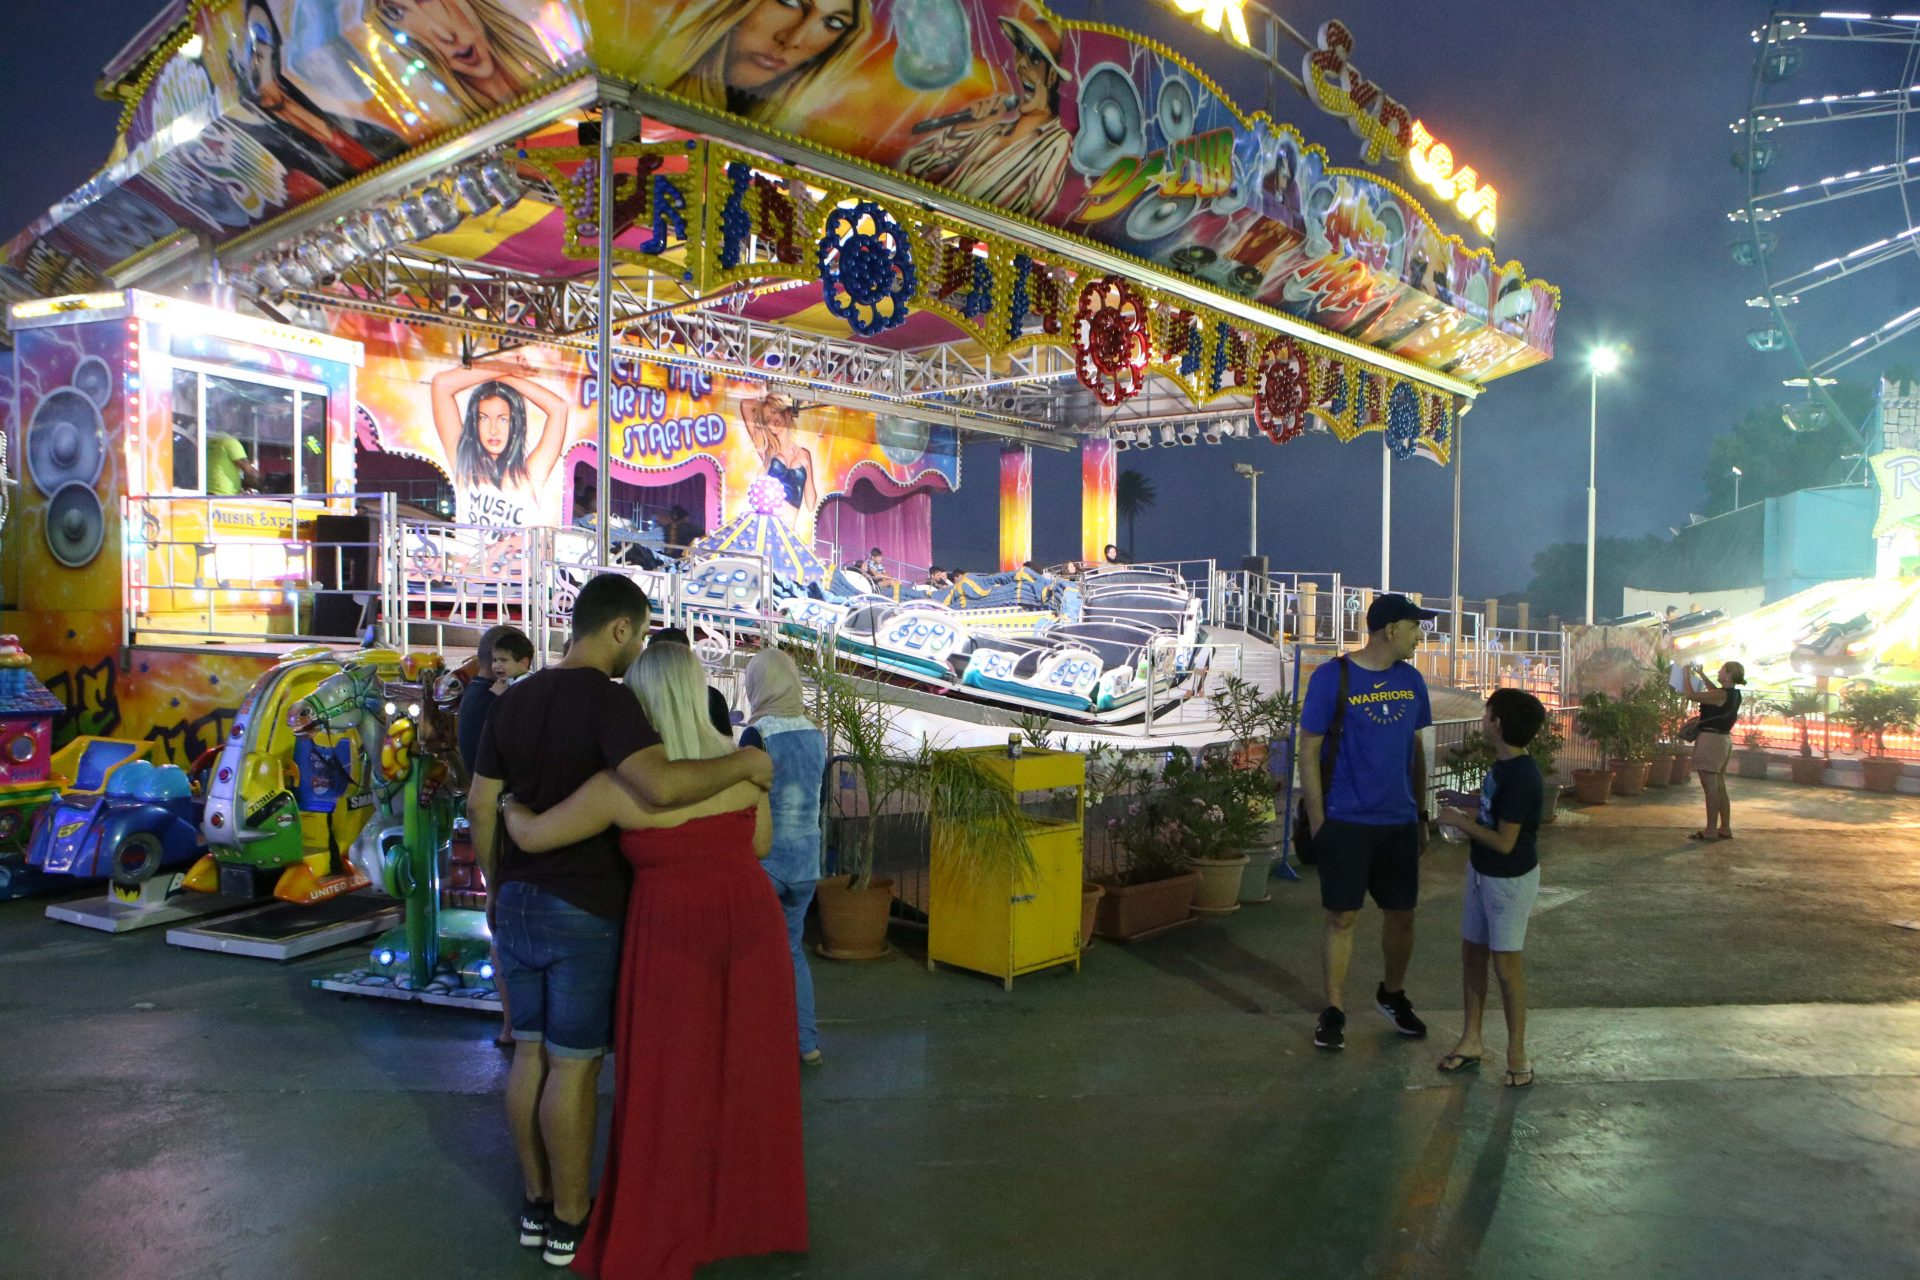 agia napa The fairground is doing quite well with Cypriot visitors 1920x1280 cm